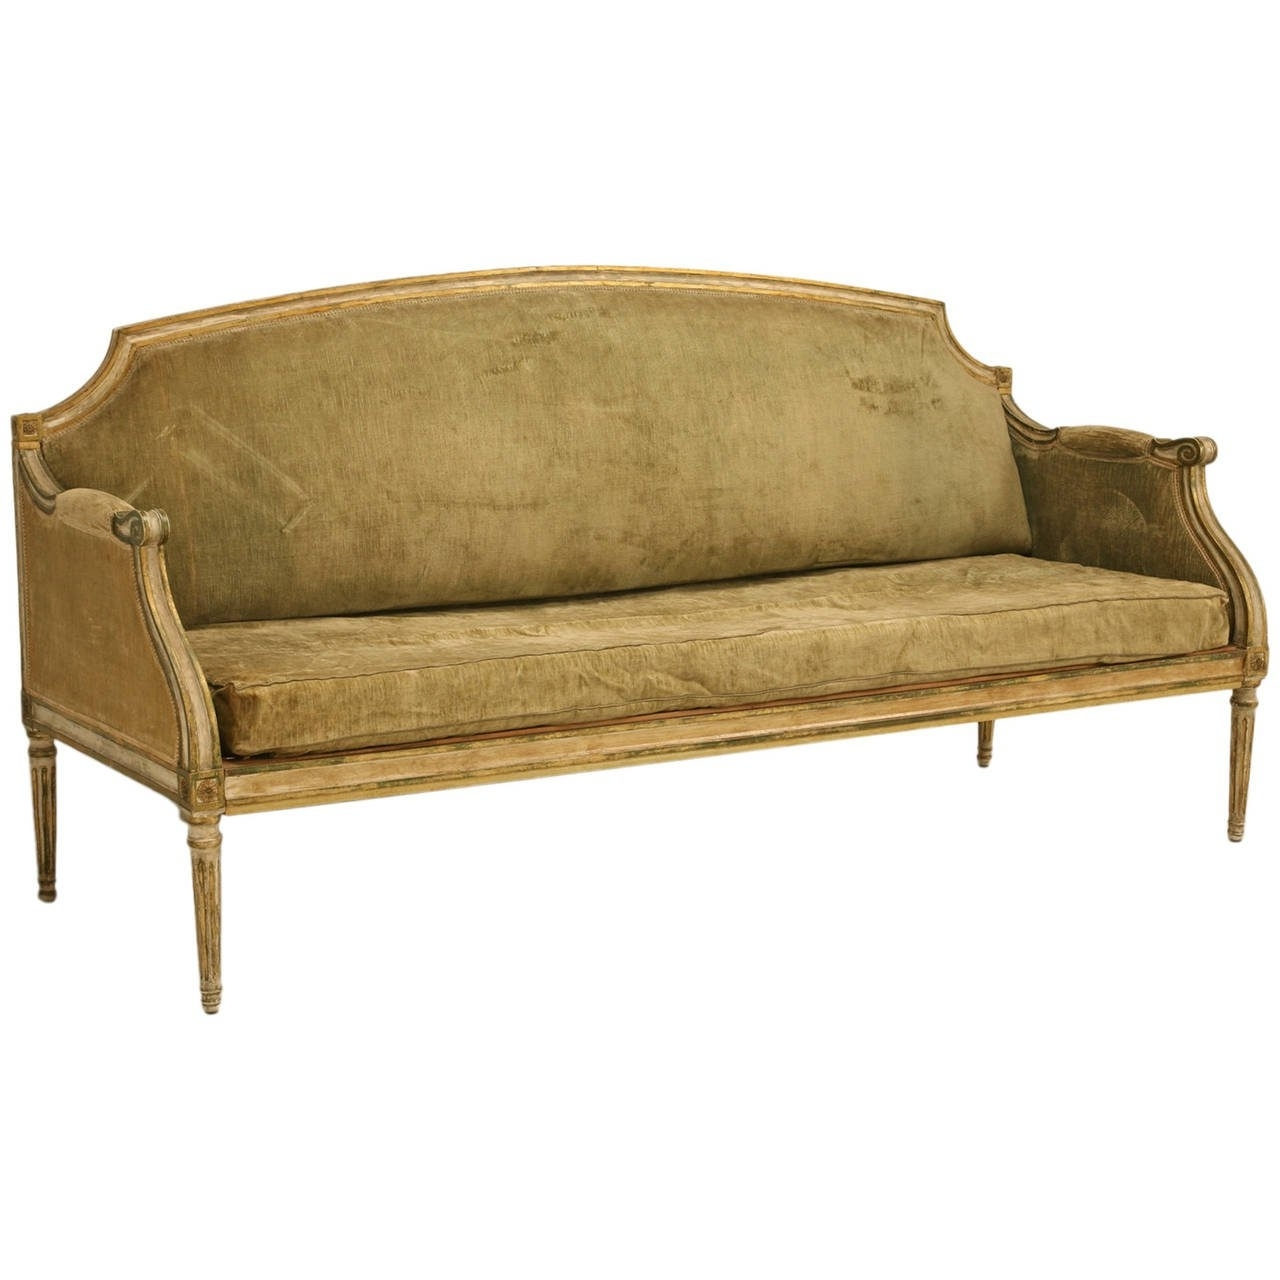 Recent Xvi Style Antique Sofa In Incredible Original Paint At 1stdibs Pertaining To Antique Sofas (View 14 of 20)